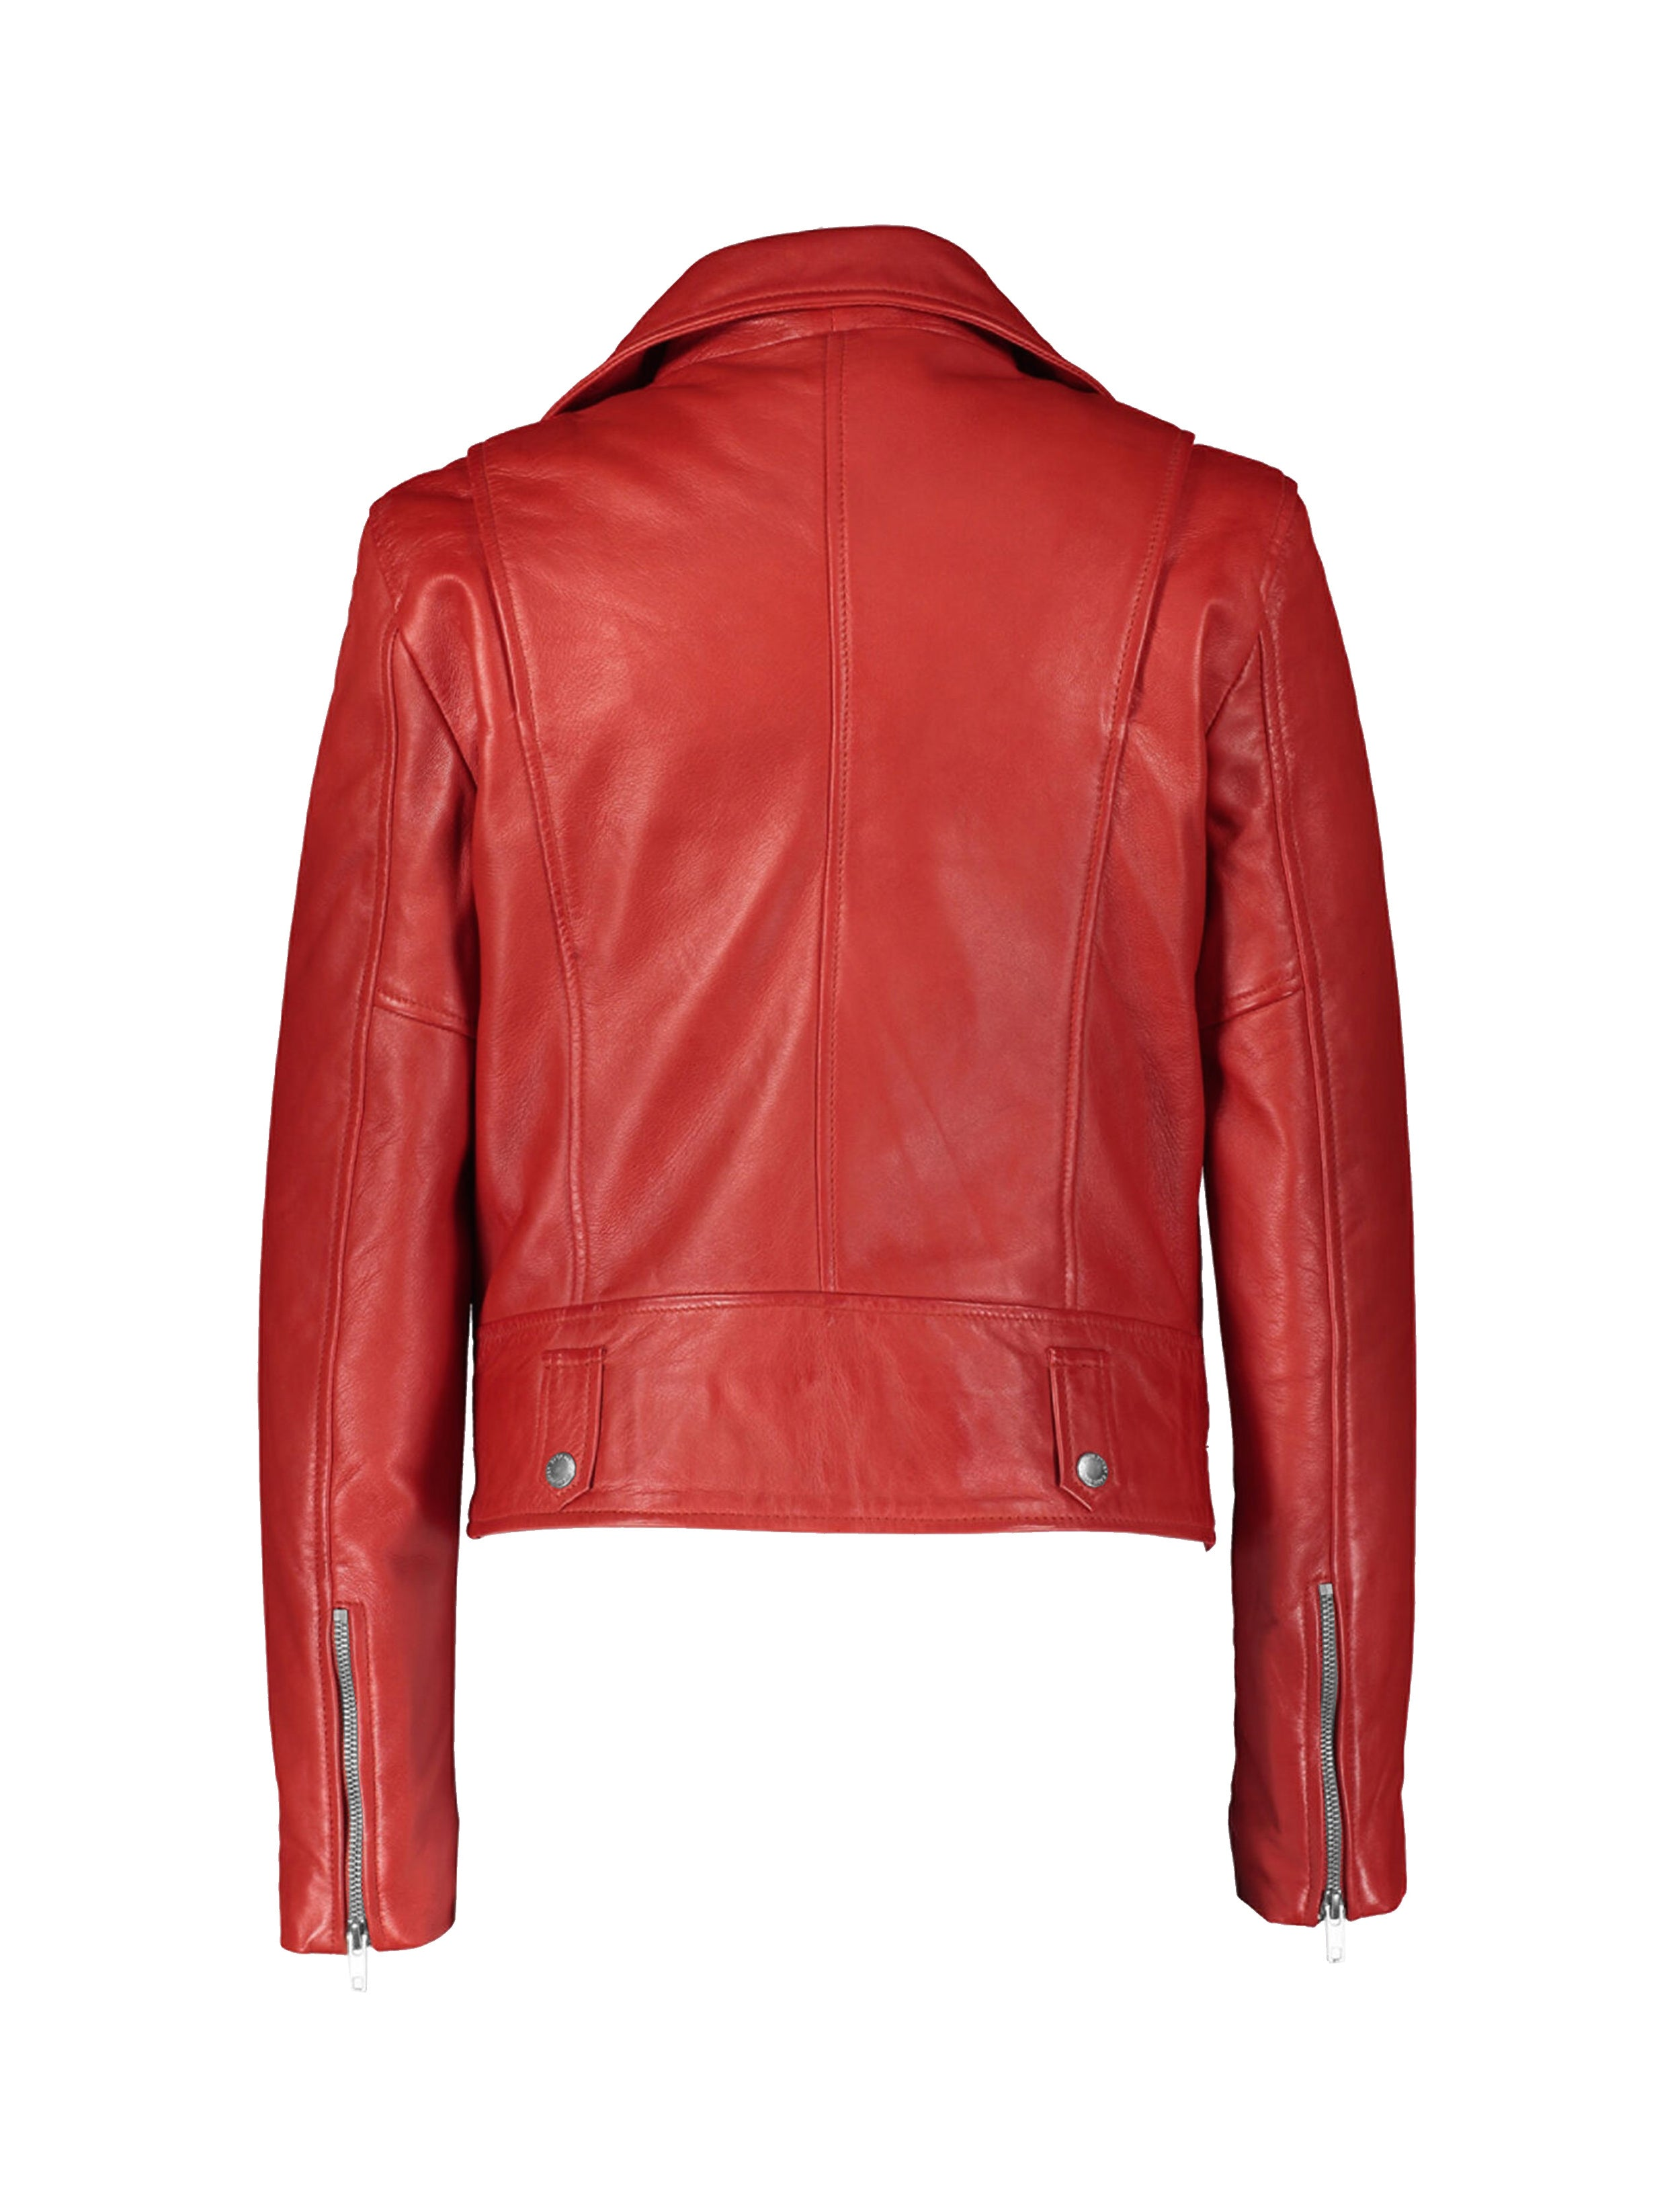 RED LEATHER MOTOCYCLE JACKET